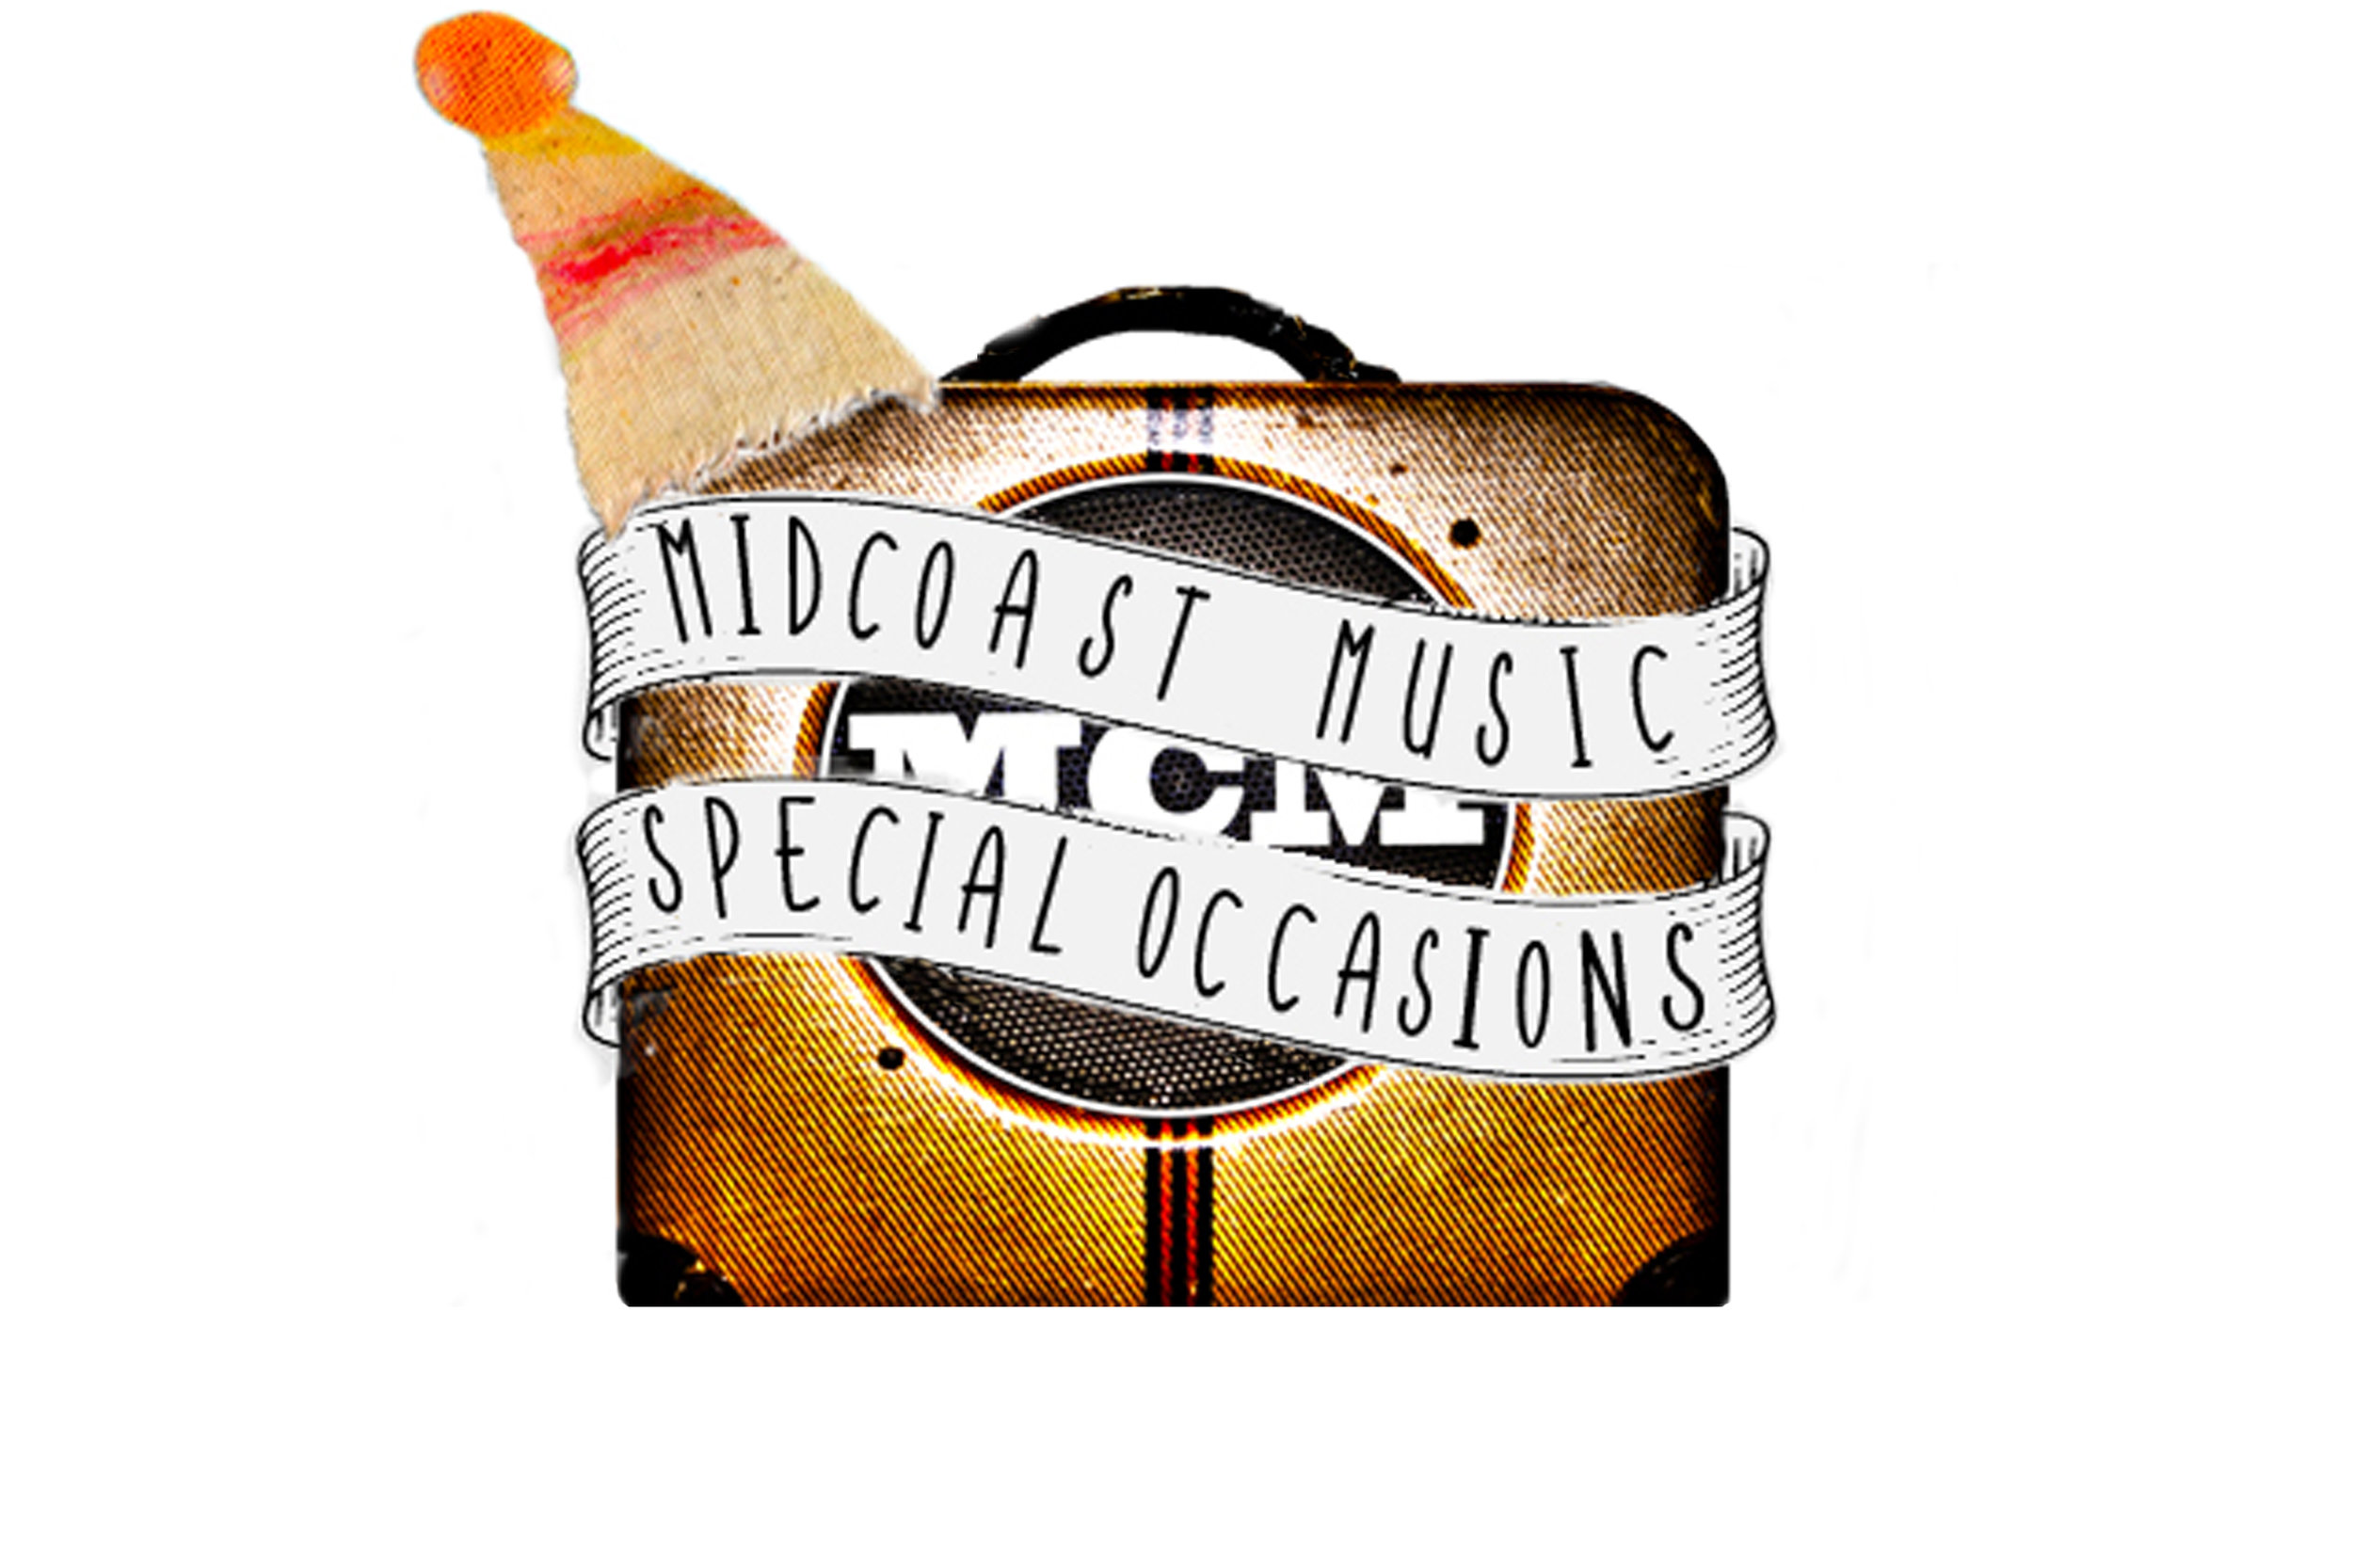 MidCoast Music Special Occasions    Original Special Occasion Songs.   12 Songs and 72 tracks of holiday and special occasion songs joyfully made to bring fun, humor, wonder and heart to your Commercials, Greetings, Promos and year round Holiday Shows and Movies.   Special Occasion Themes   · Holidays  · Birthdays  · Life Transitions (Weddings, Graduation, Promotions, No Limit!)  Greetings   MidCoast Music's Special Occasions  Catalog features vocal and instrumental versions with dynamic edit points throughout with peak endings at :29 and :59.   Format   ·  60 Main  Vocals  ·  30 Promo  Vocals  ·  15 Hook  Vocals  ·  60 Main  Instrumental  ·  30 Promo  Instrumental  ·  15 Hook  Instrumental